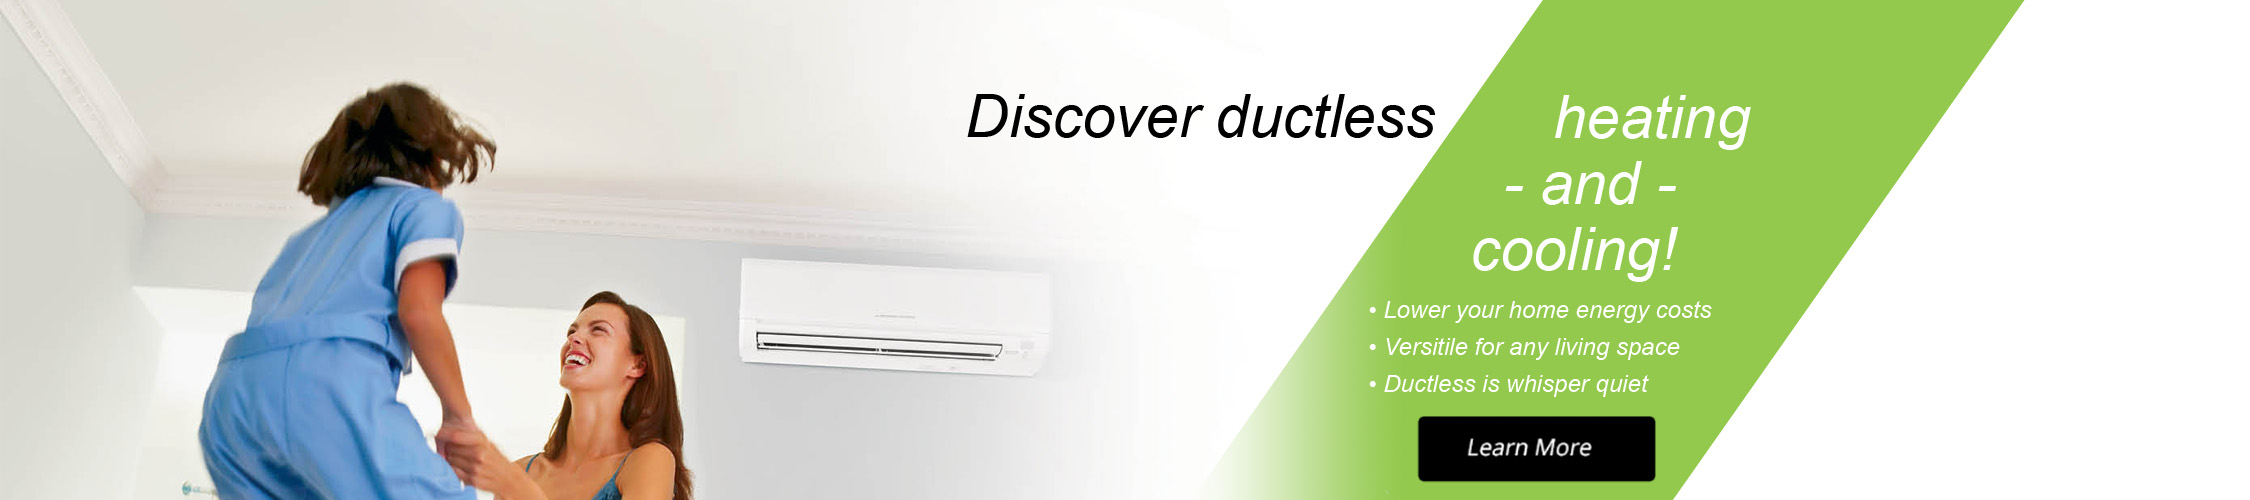 Ductless mini split heating and air conditioning